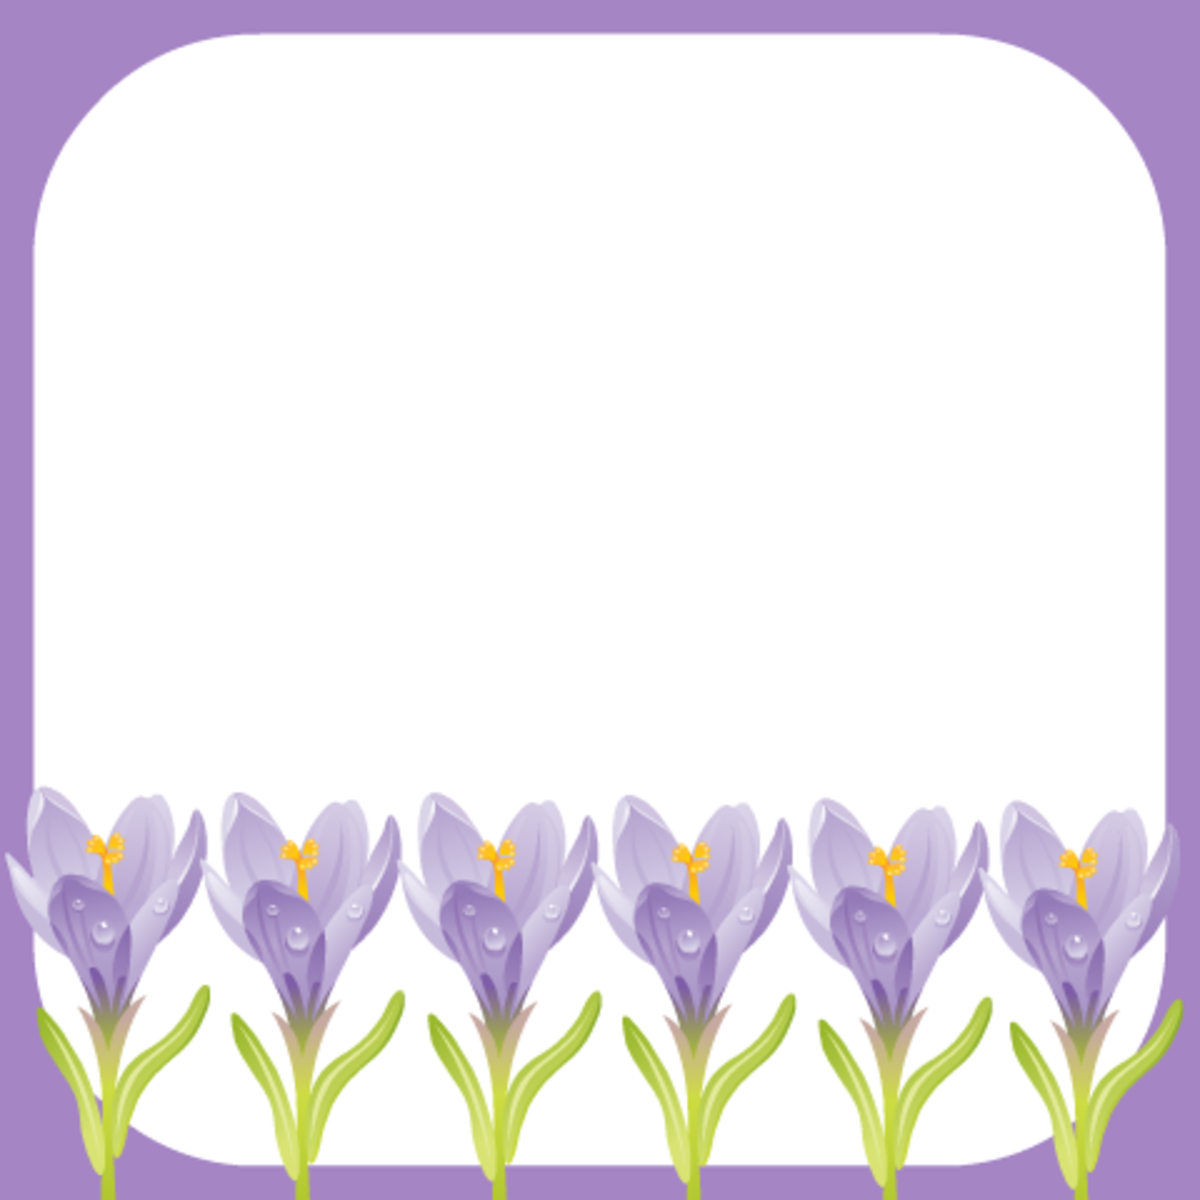 Row of purple crocus scrapbook journaling card on a white background